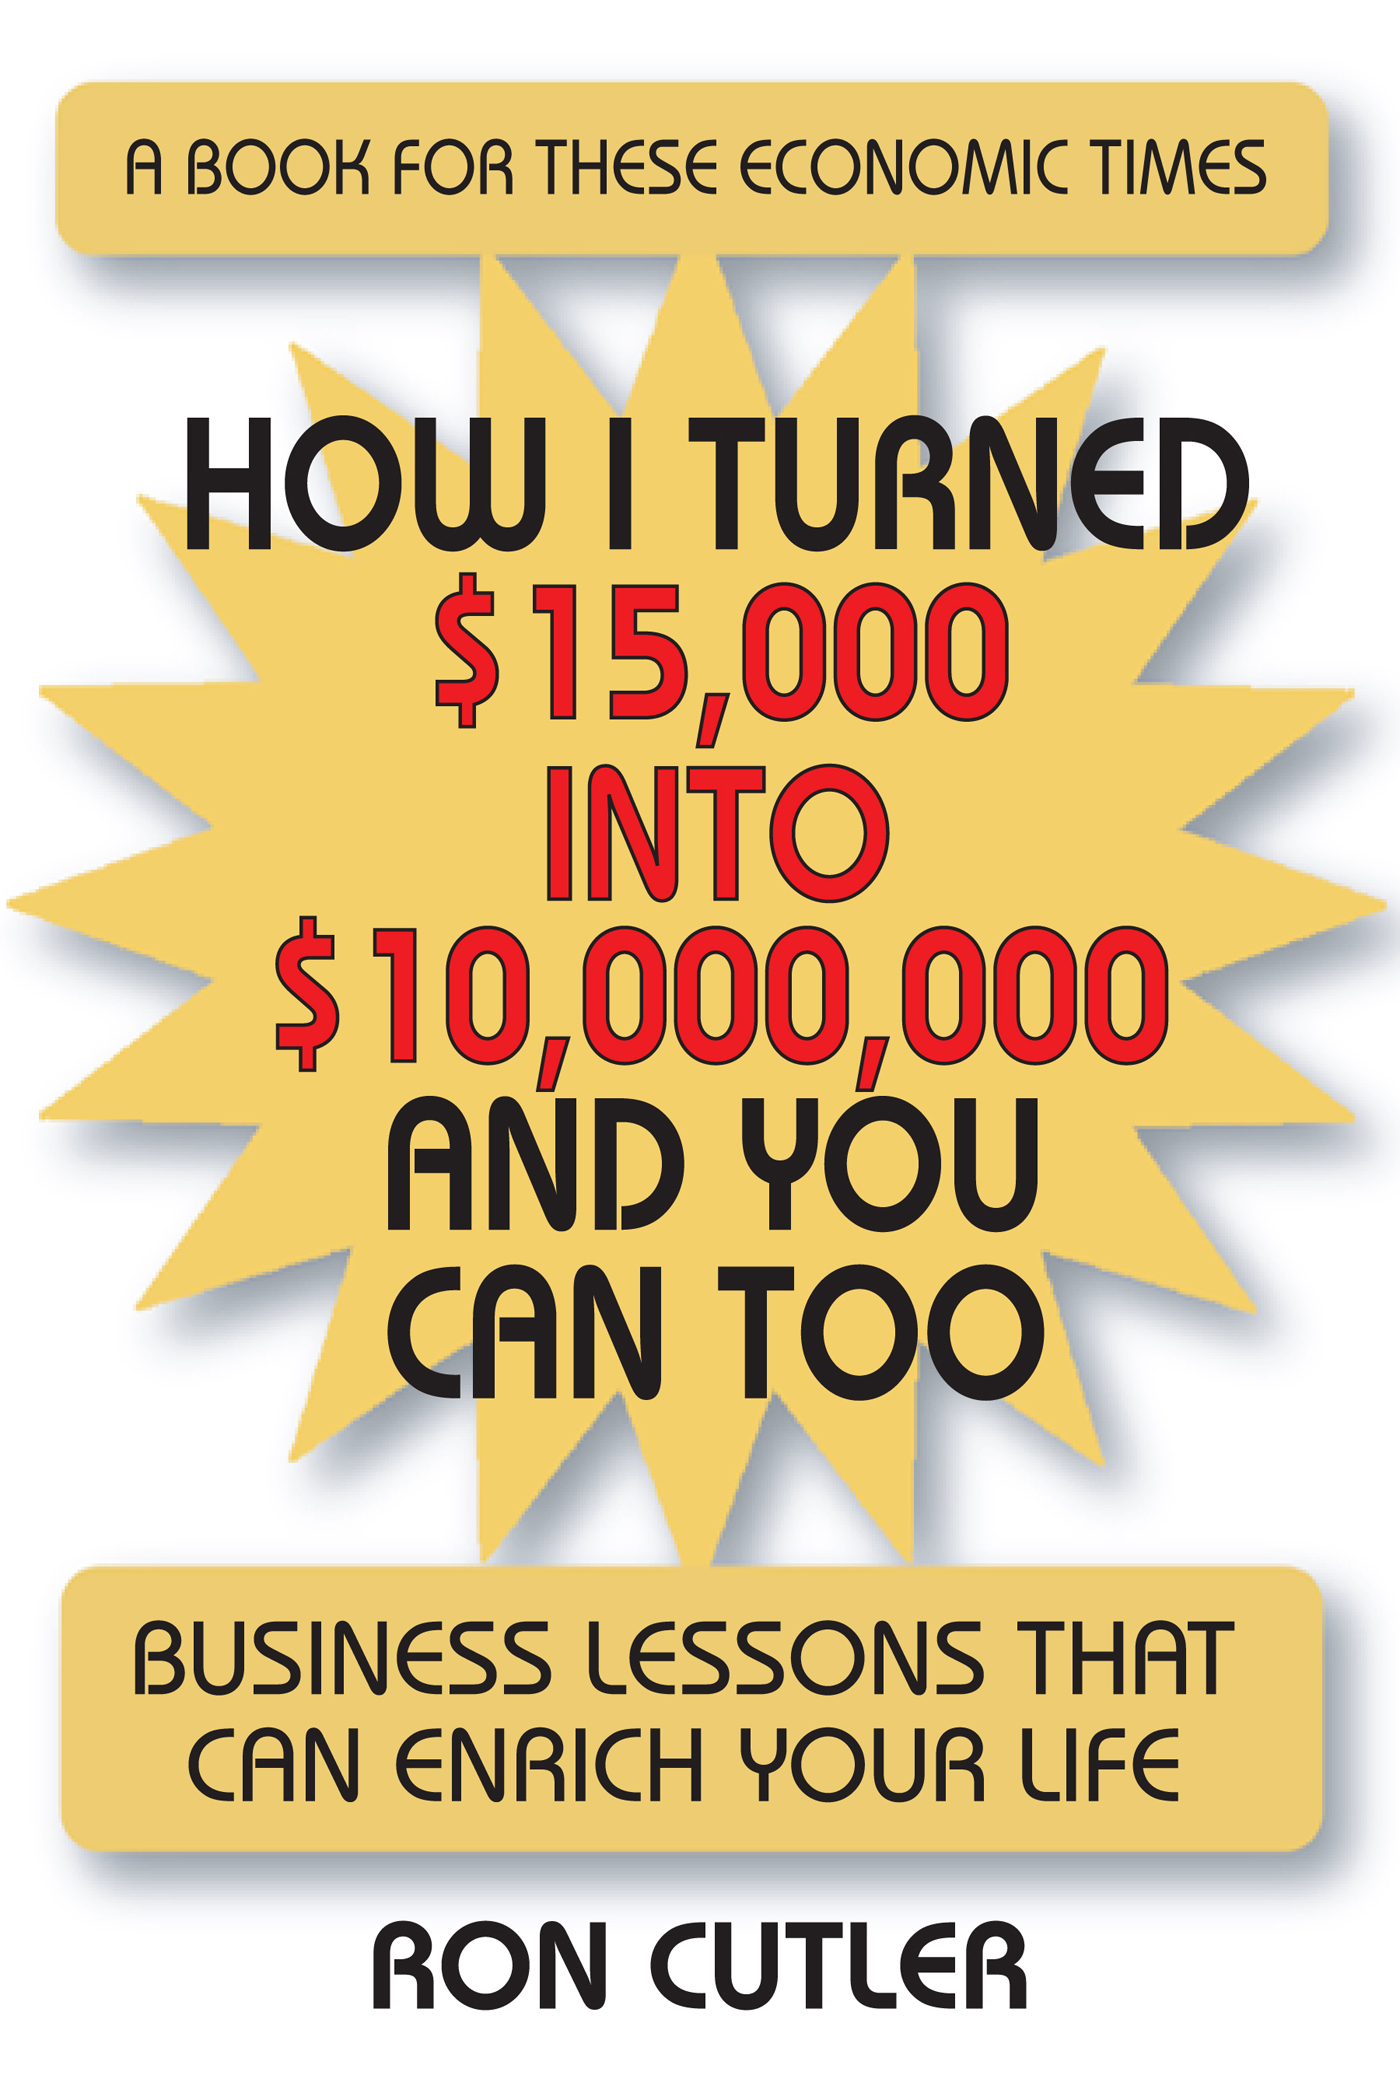 How I Turned $15,000 to $10,000,000 and You Can Too: Business Lessons That Can Enrich Your Life By: Ron Cutler